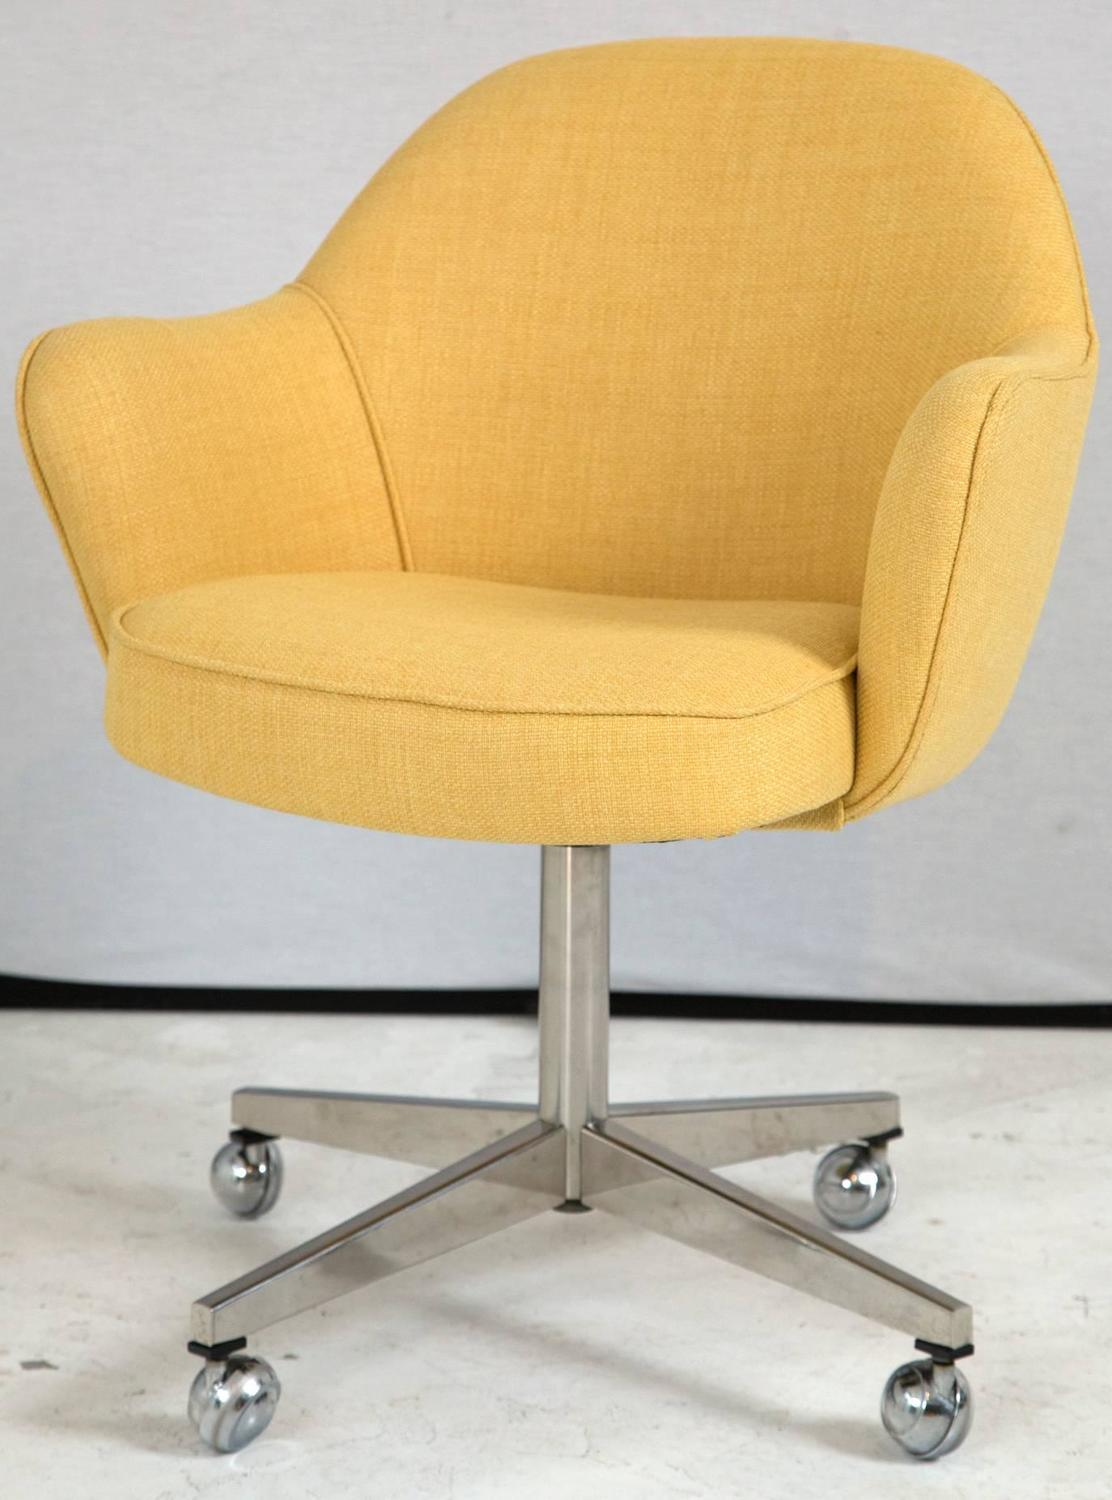 Saarinen For Knoll Executive Arm Chair In Yellow Microfiber Swivel Base At 1stdibs